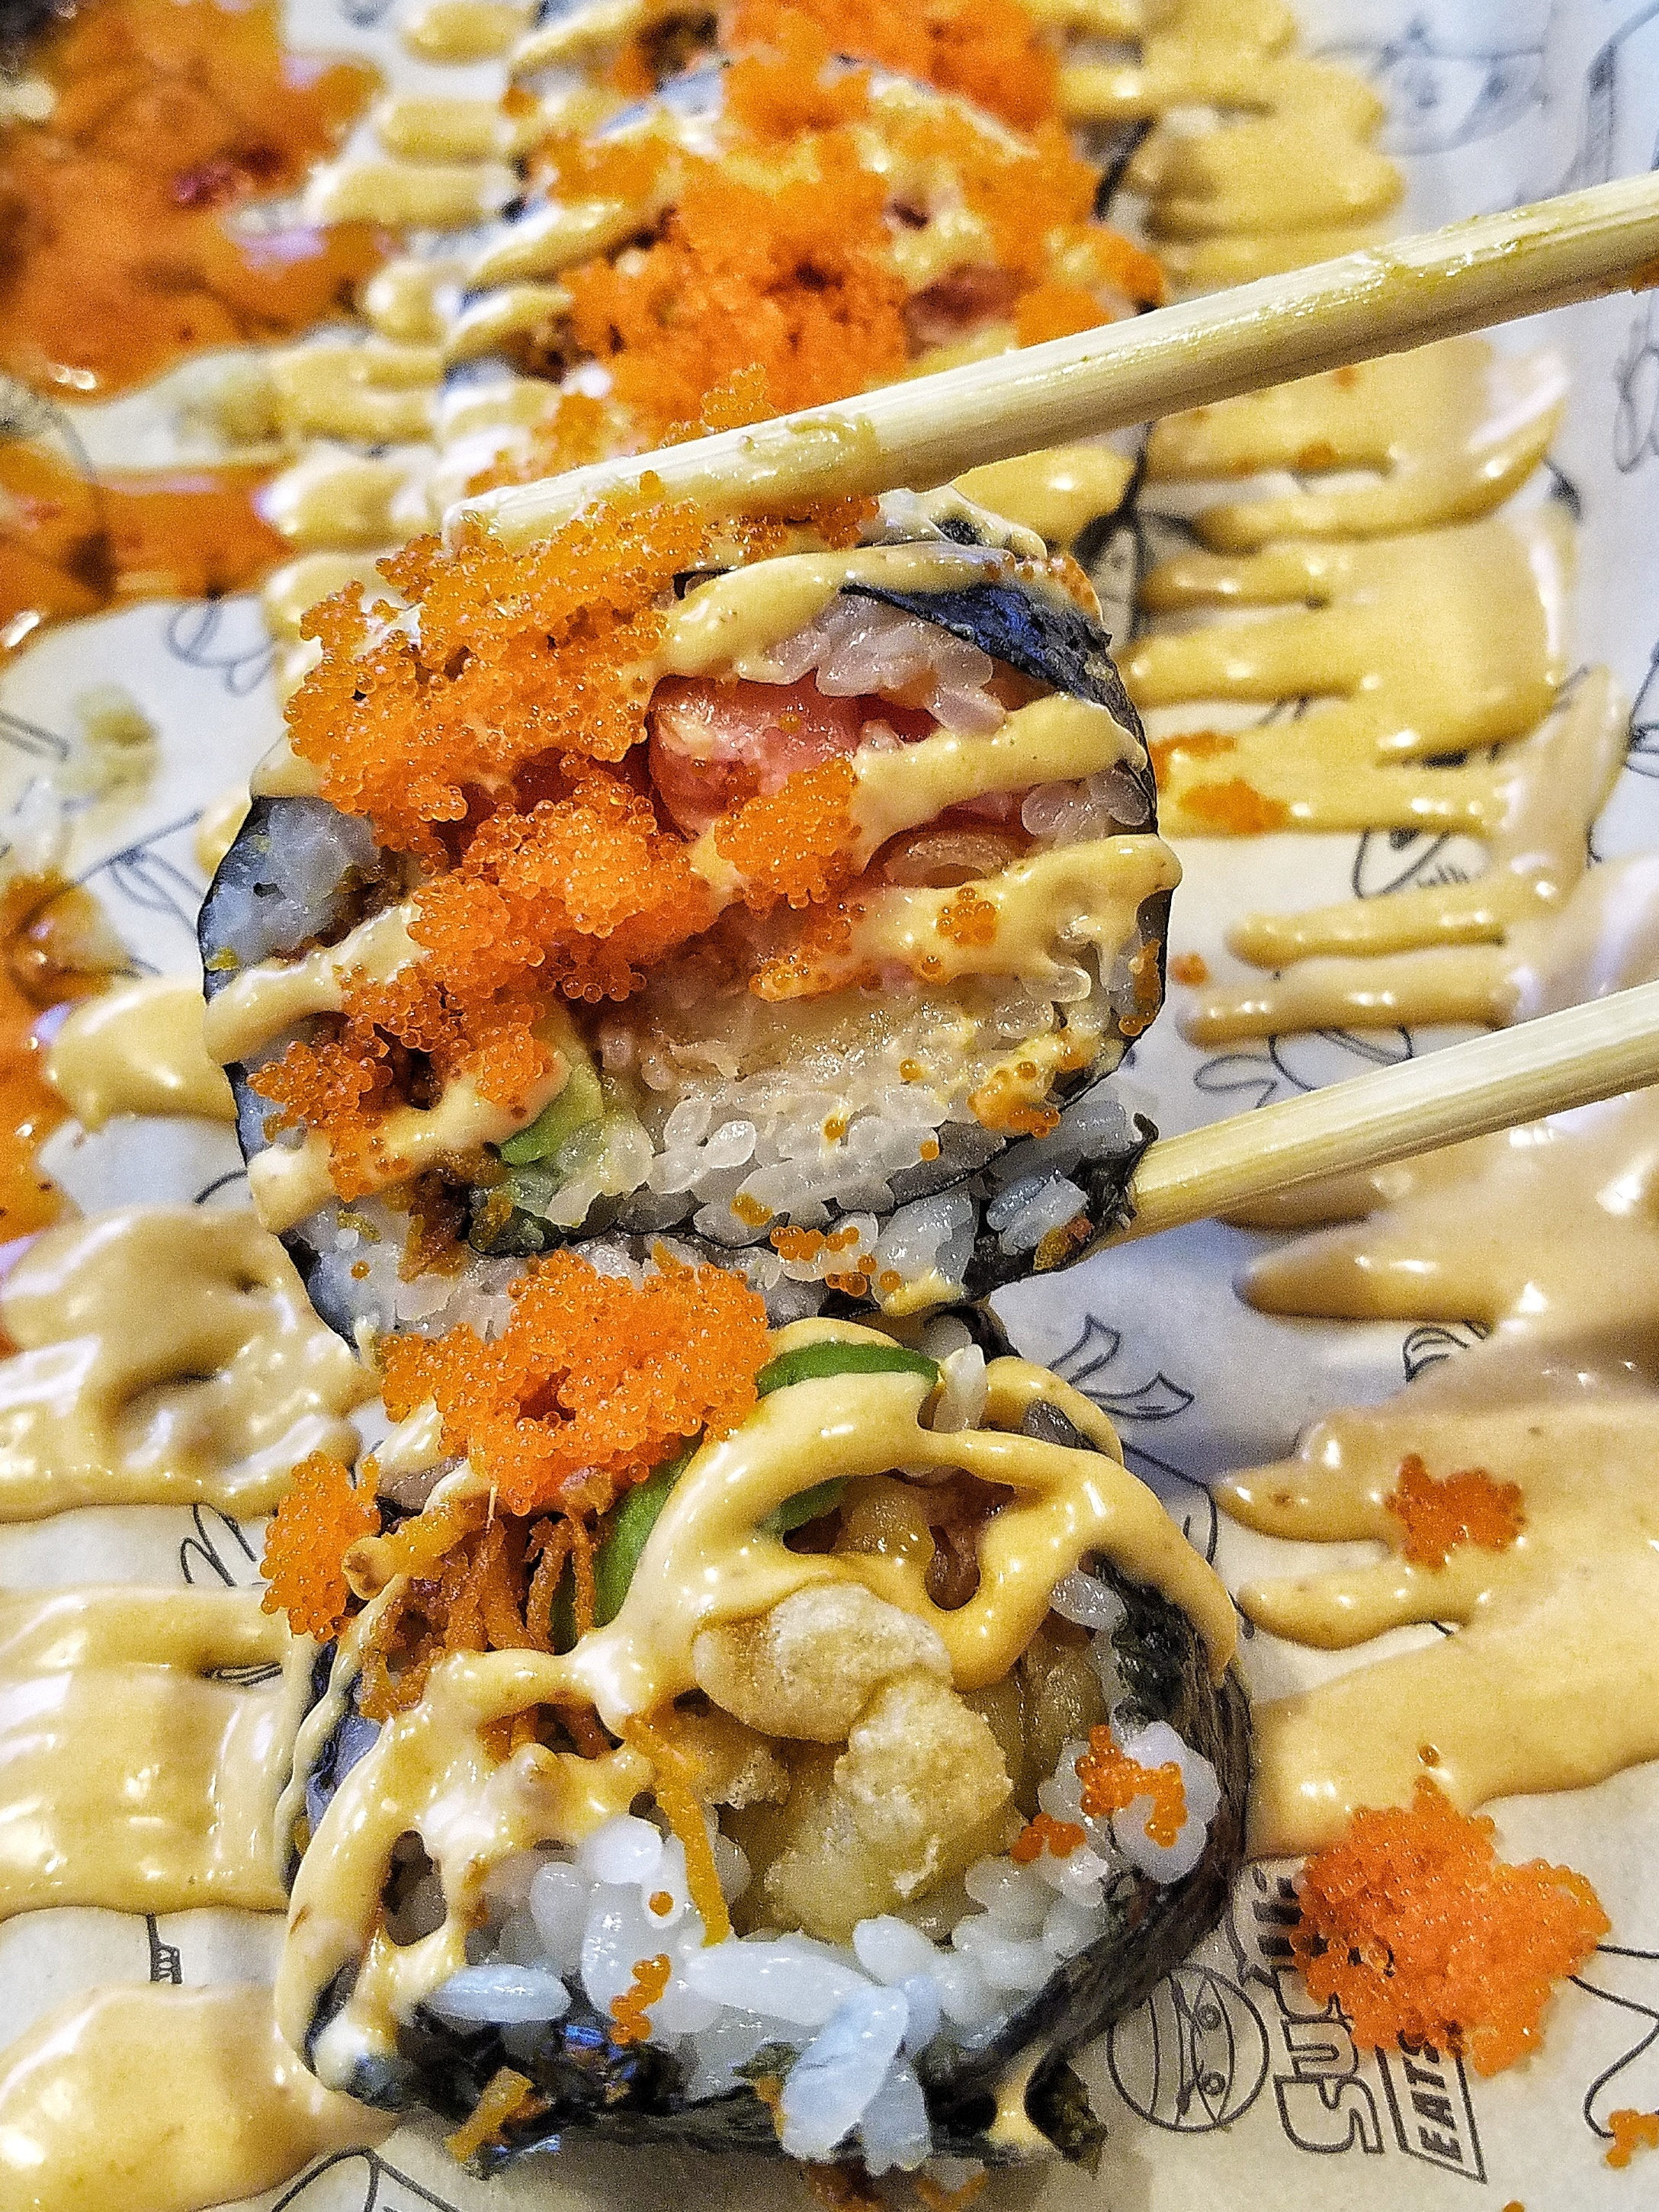 Sus Hi Eatstation Opens On Colonial Drive Taste Cook Sip Located in solana beach our talented sushi chefs can prepare any roll, sashimi, special roll, noodles. sus hi eatstation opens on colonial